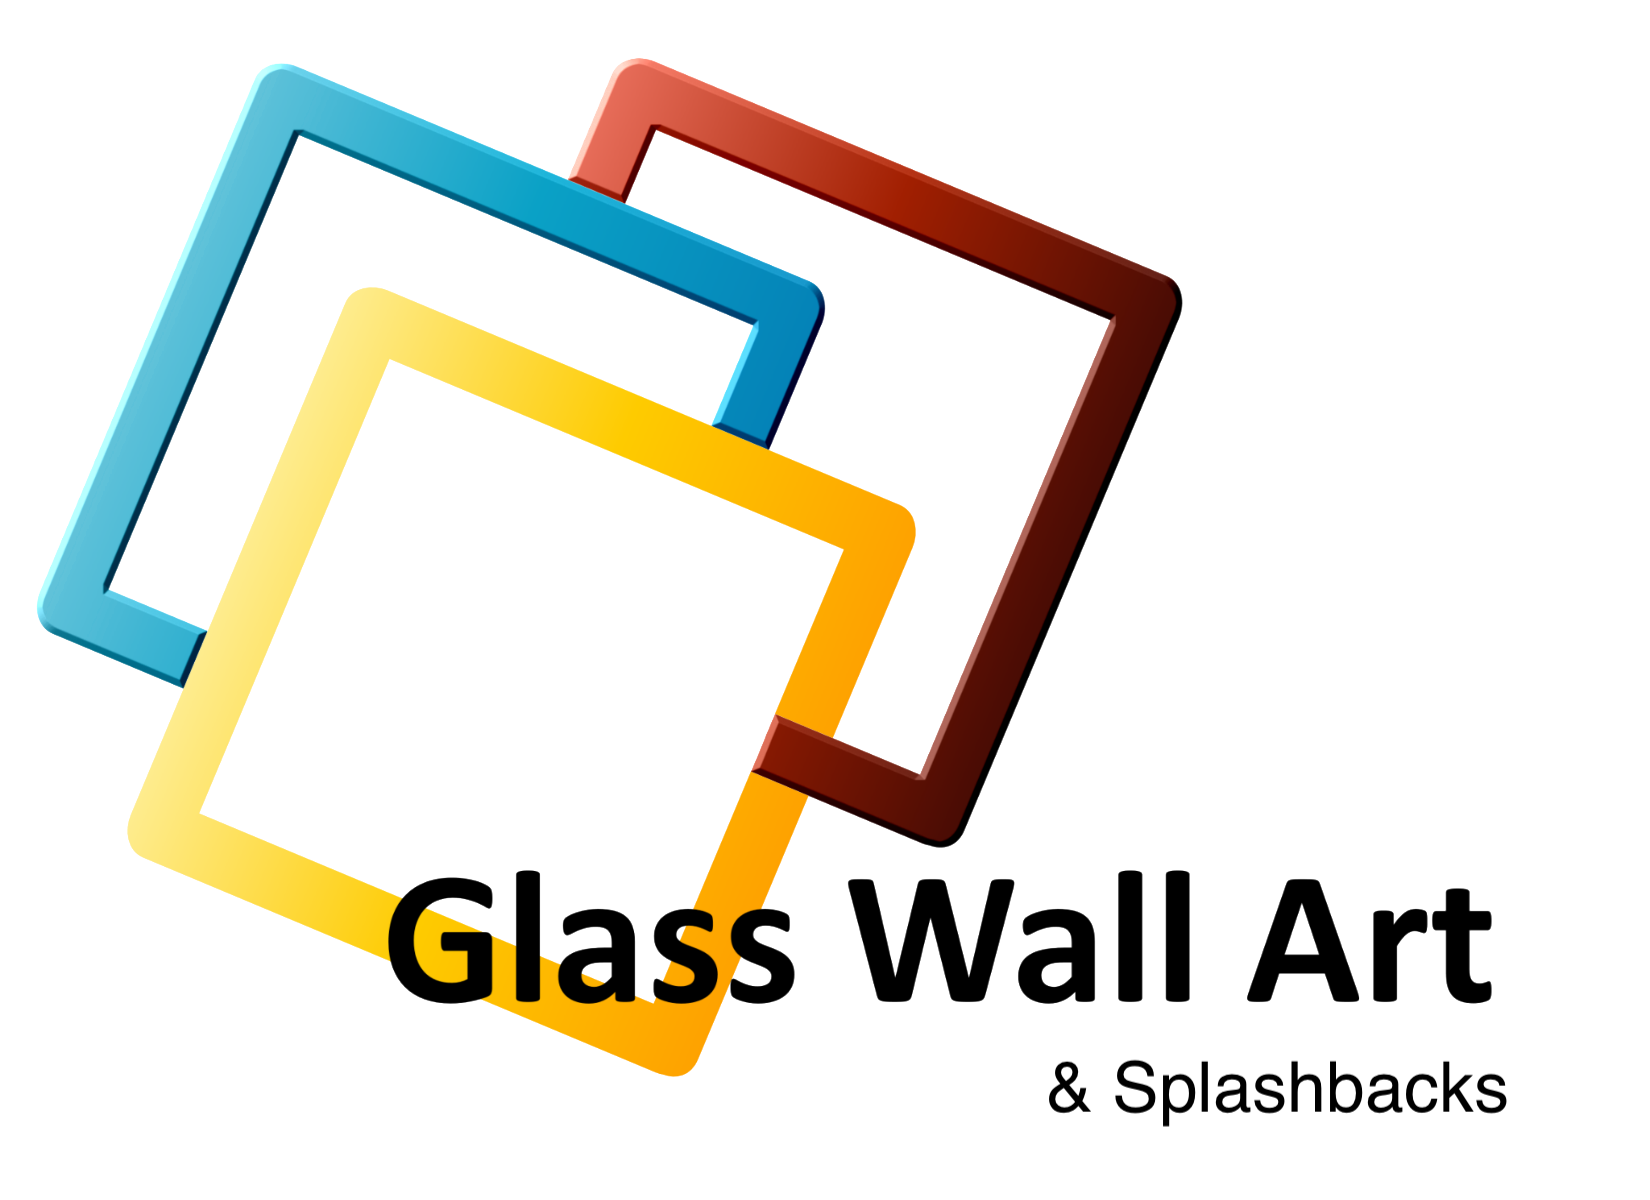 Glass Wall Art